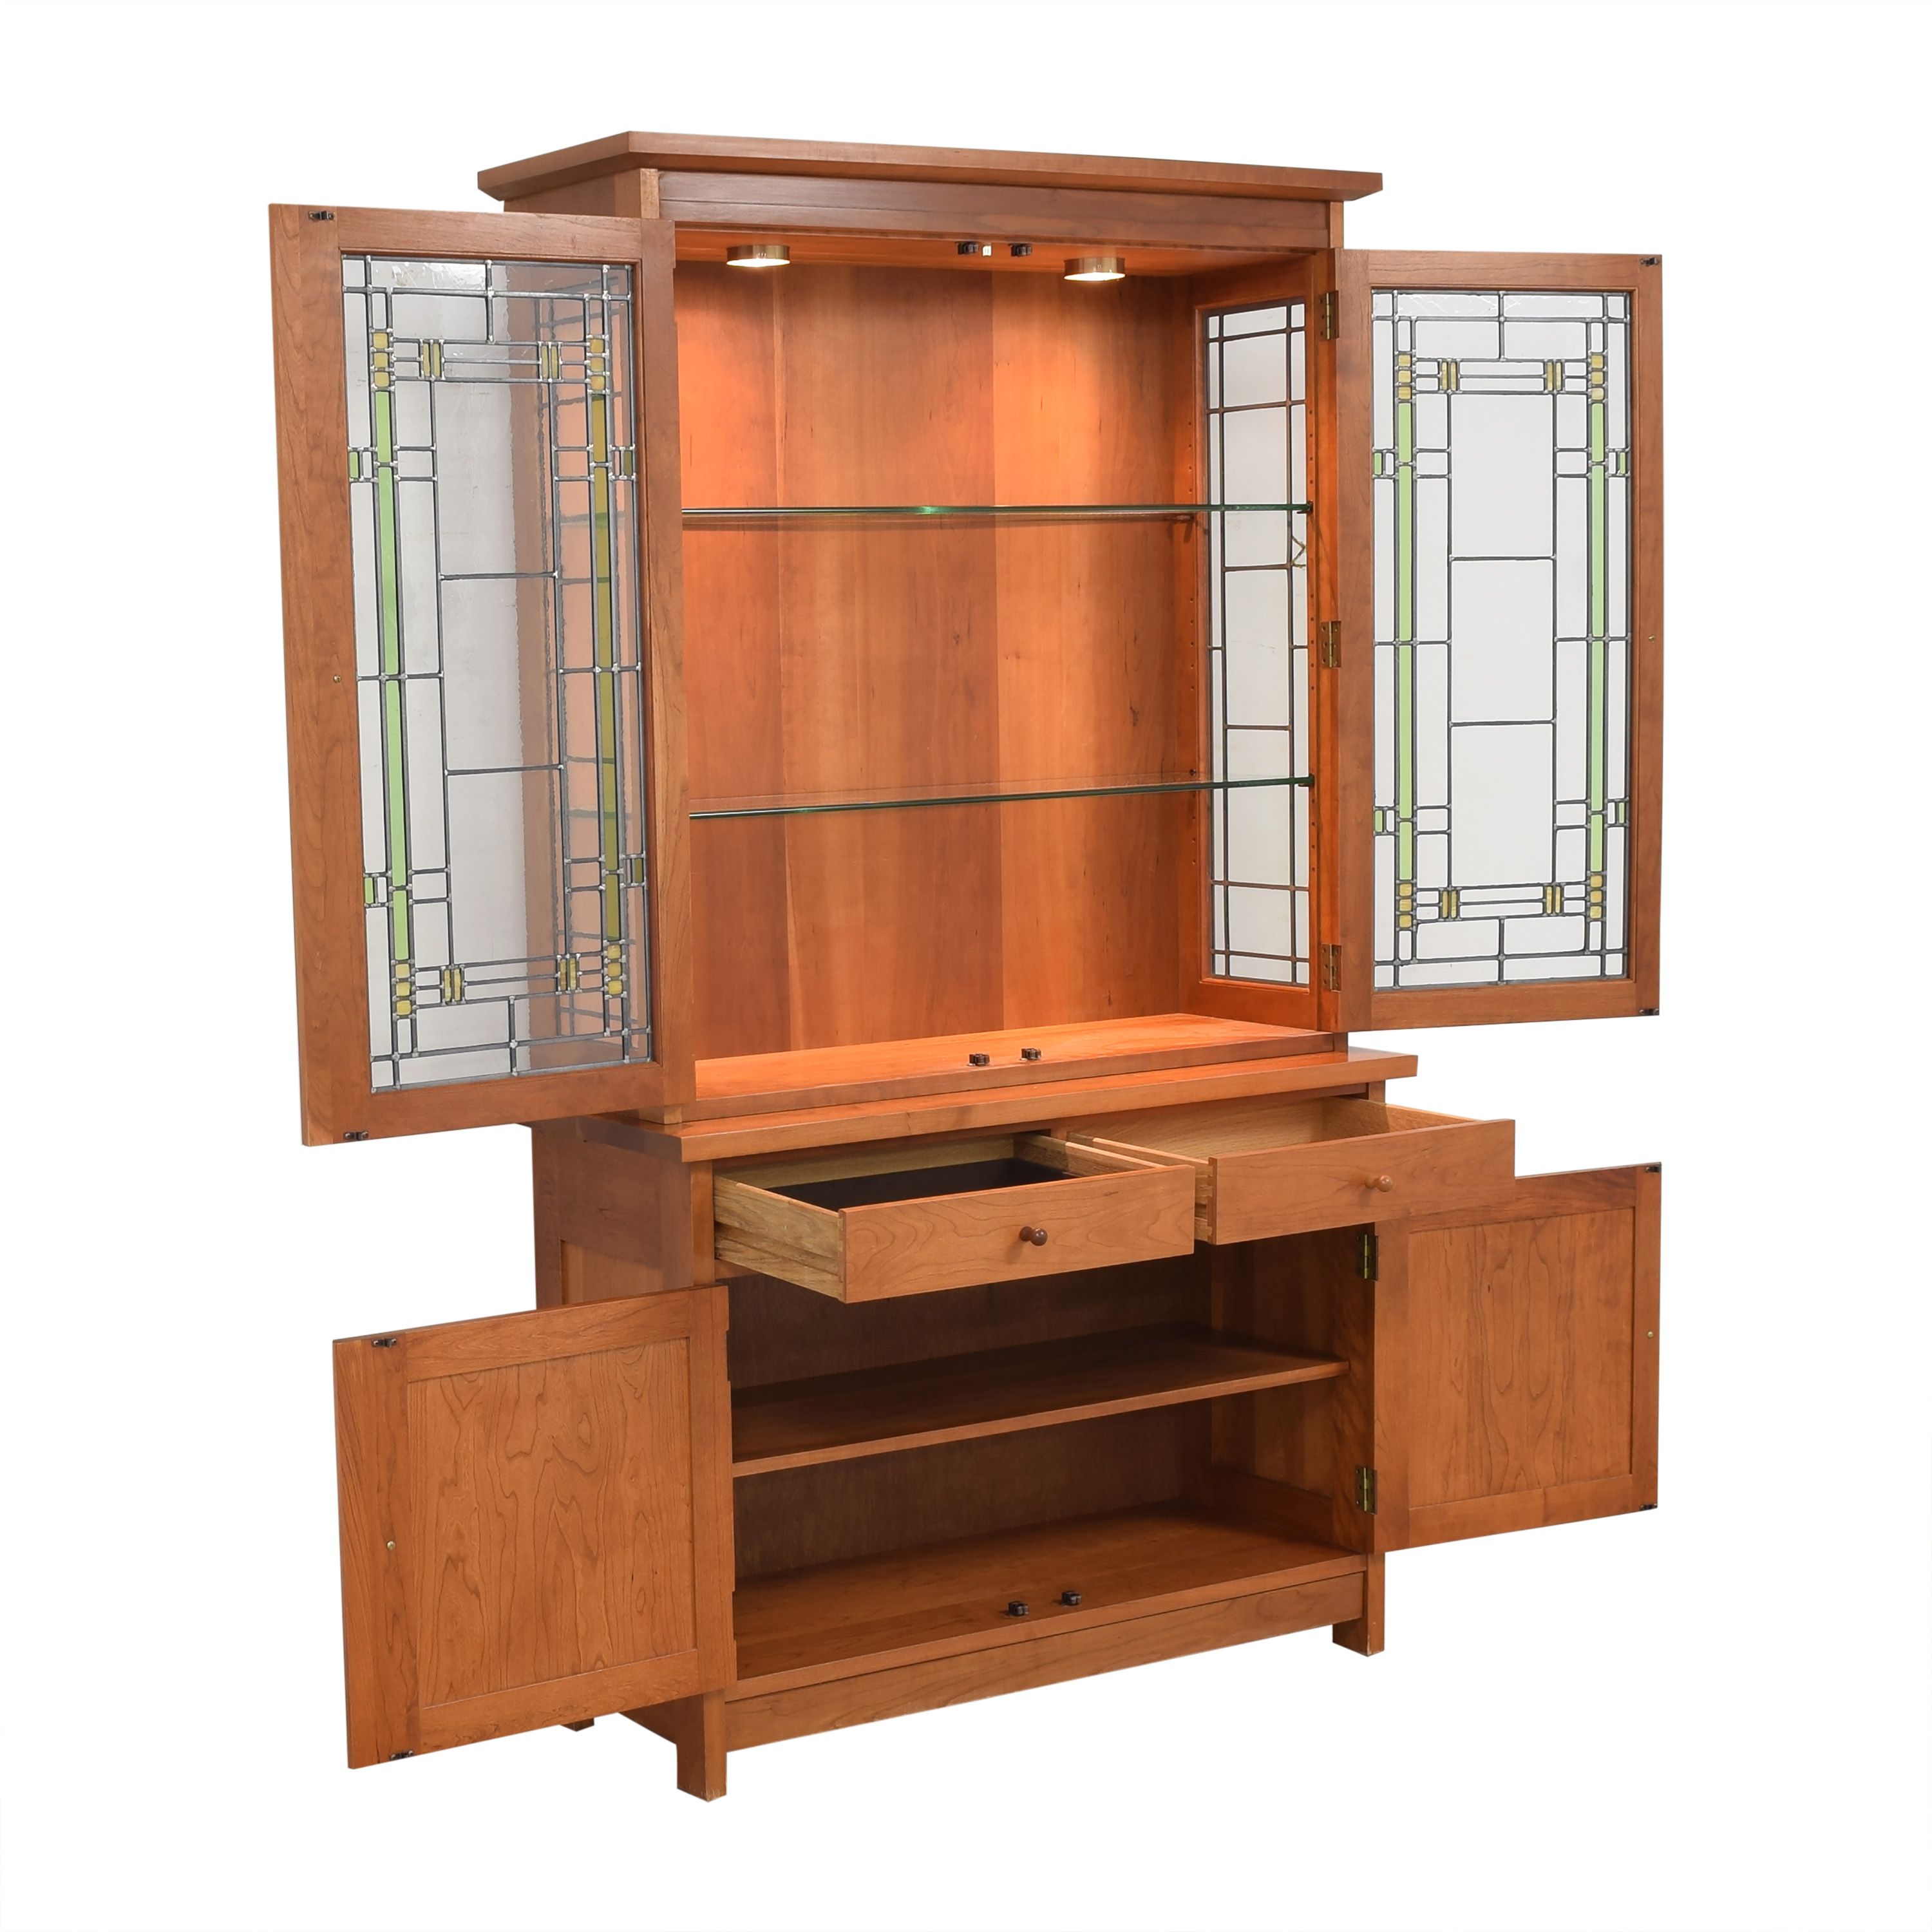 Stickley Furniture Stickley Lighted China Cabinet nj